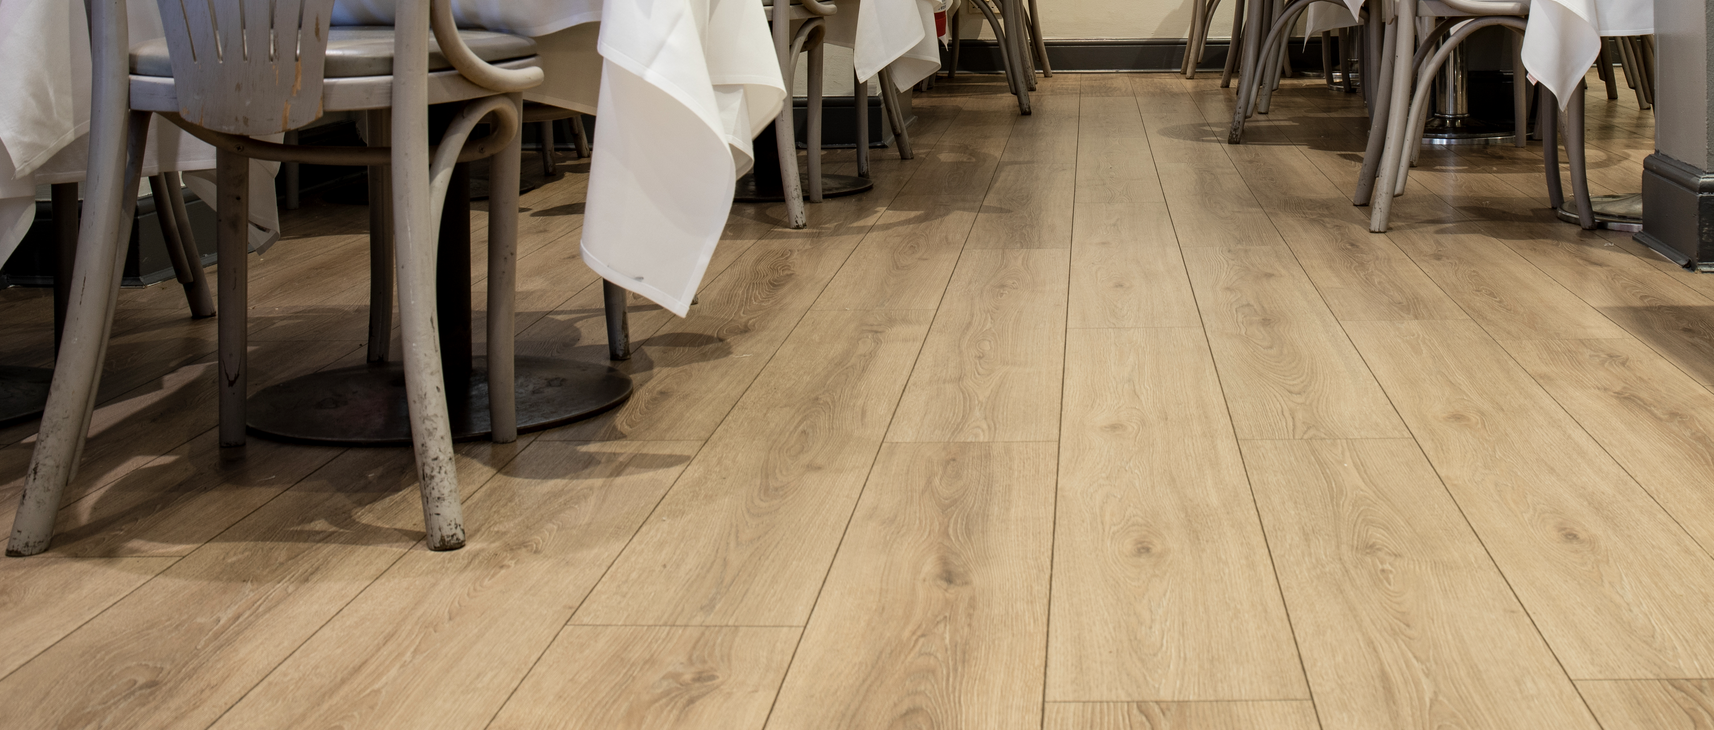 Wenge Oak Solid Wood Flooring what is commercial wood flooring? - wood and beyond blog